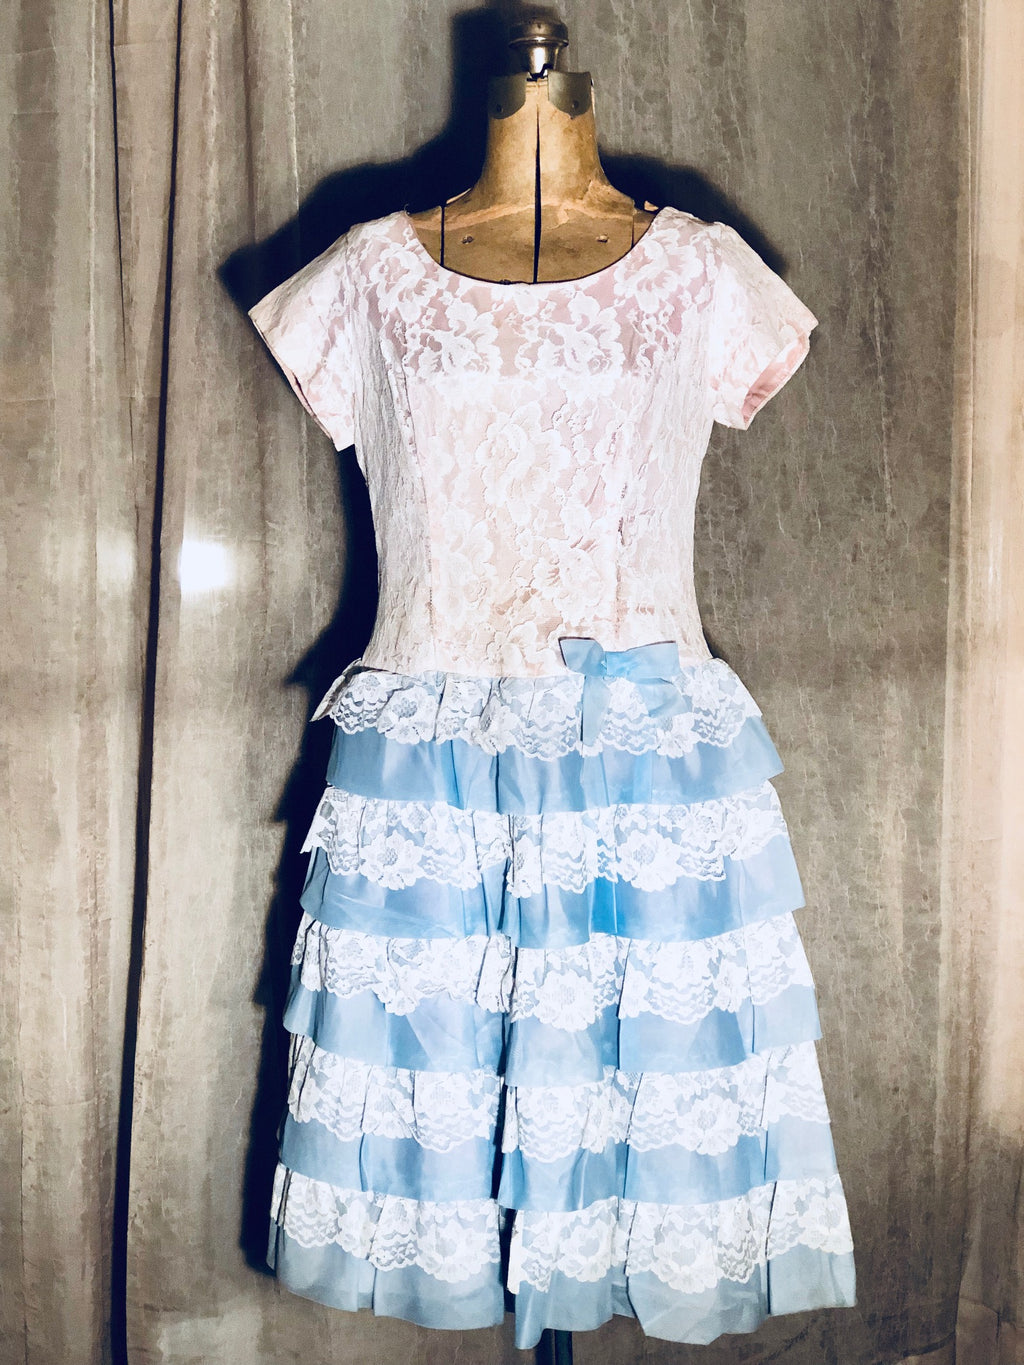 Women's True Vintage ILGWU Dress! 40's-50's Era!